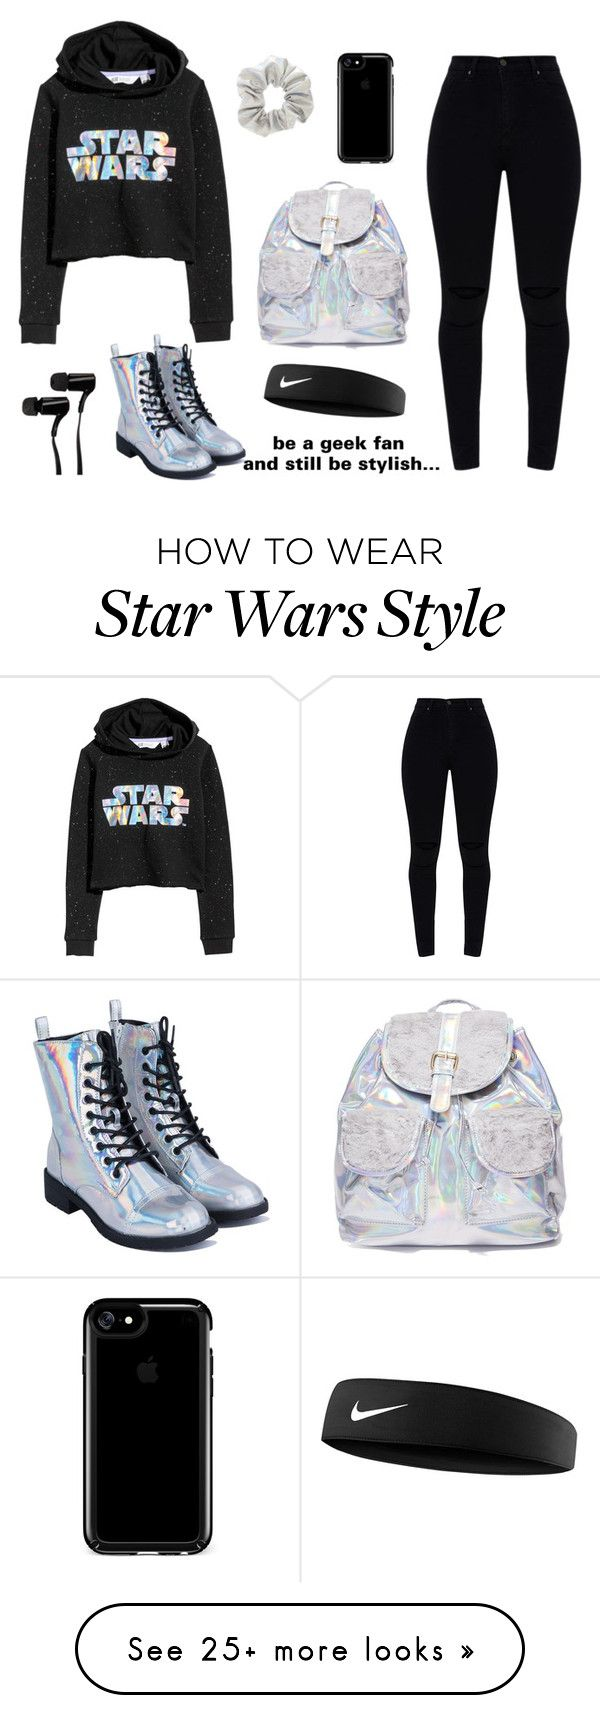 """STAR WARS 2"" by at-39thst-fashion on Polyvore featuring H&M, 3 AM Imports, Speck, Outdoor Tech, NIKE, black, holographic and starwars"